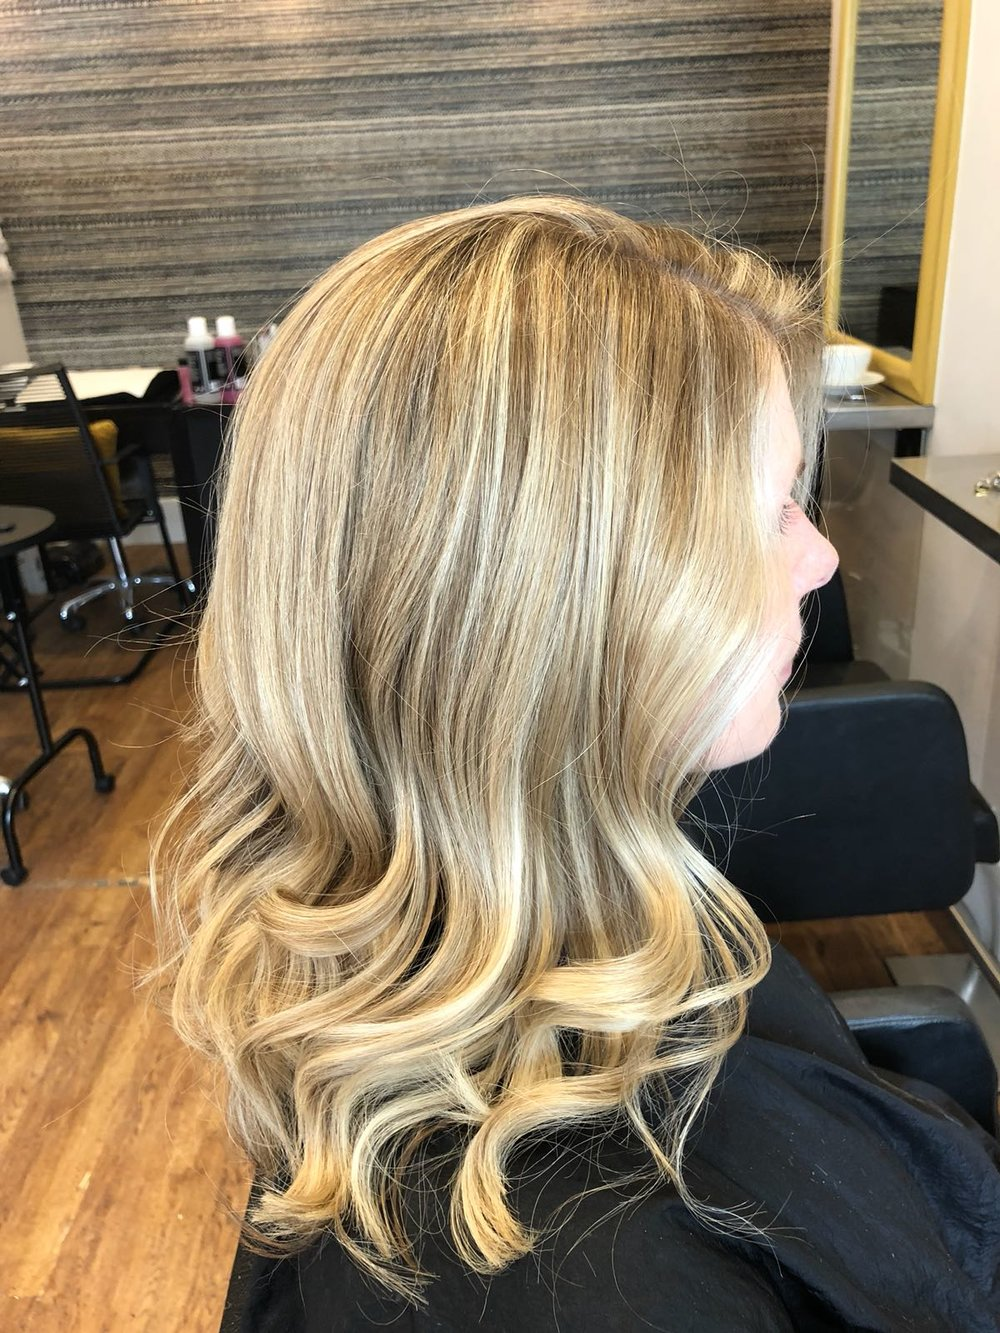 Complete Hair and Beauty WhatsApp Image 2018-04-29 at 10.00.33.jpeg